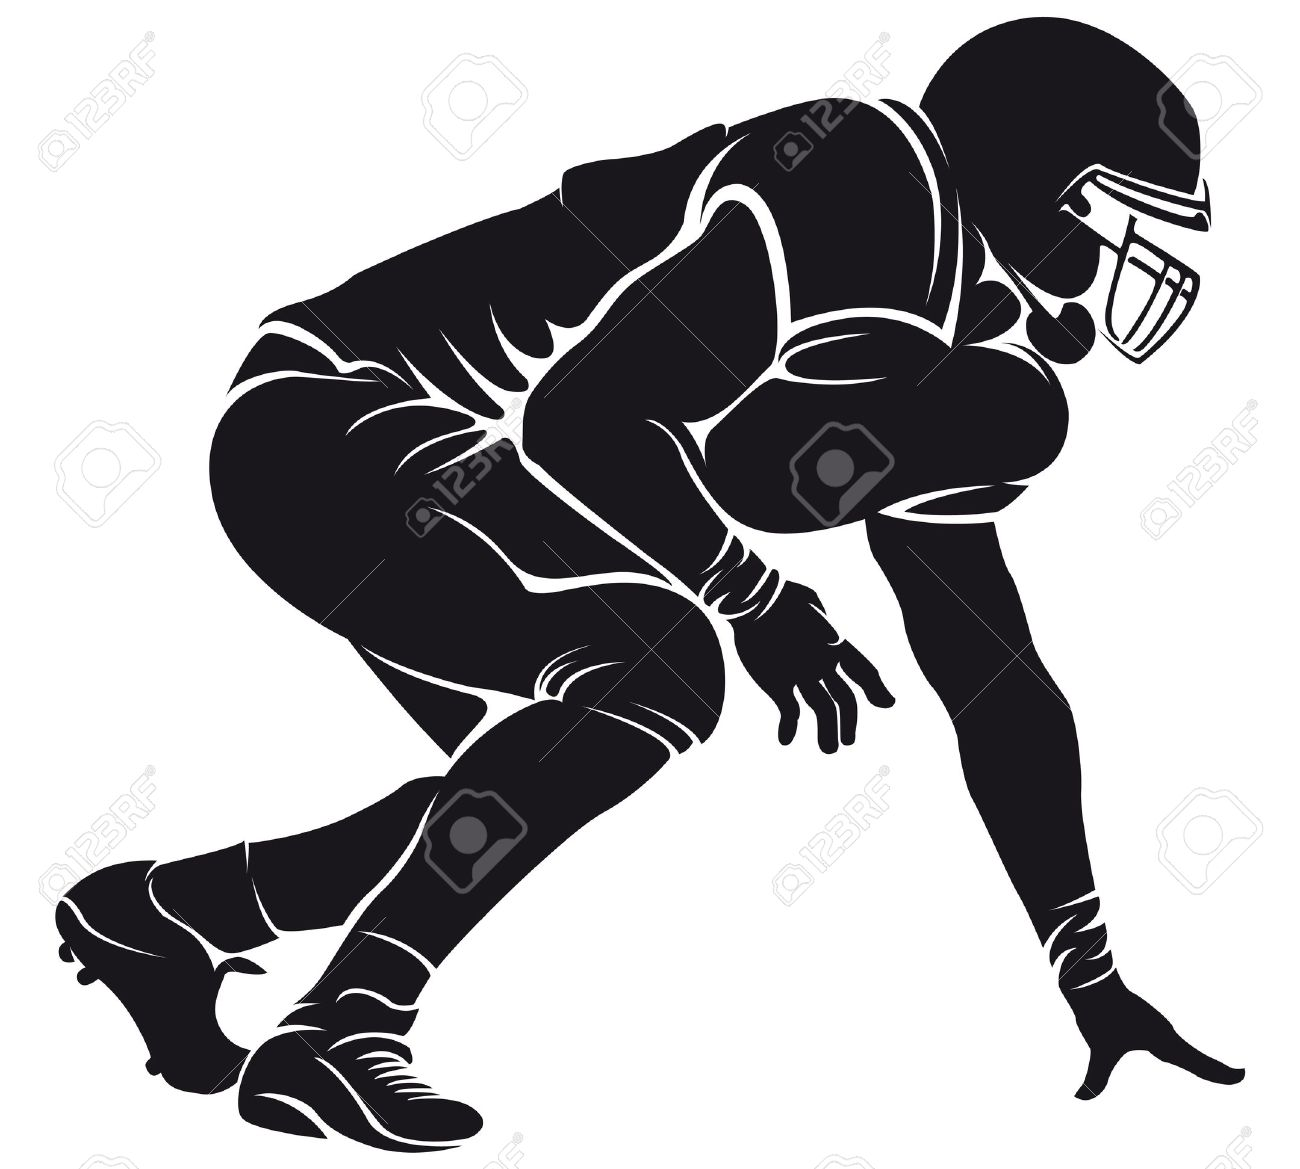 Football clipart silhouette Clipart art 986 31 collection